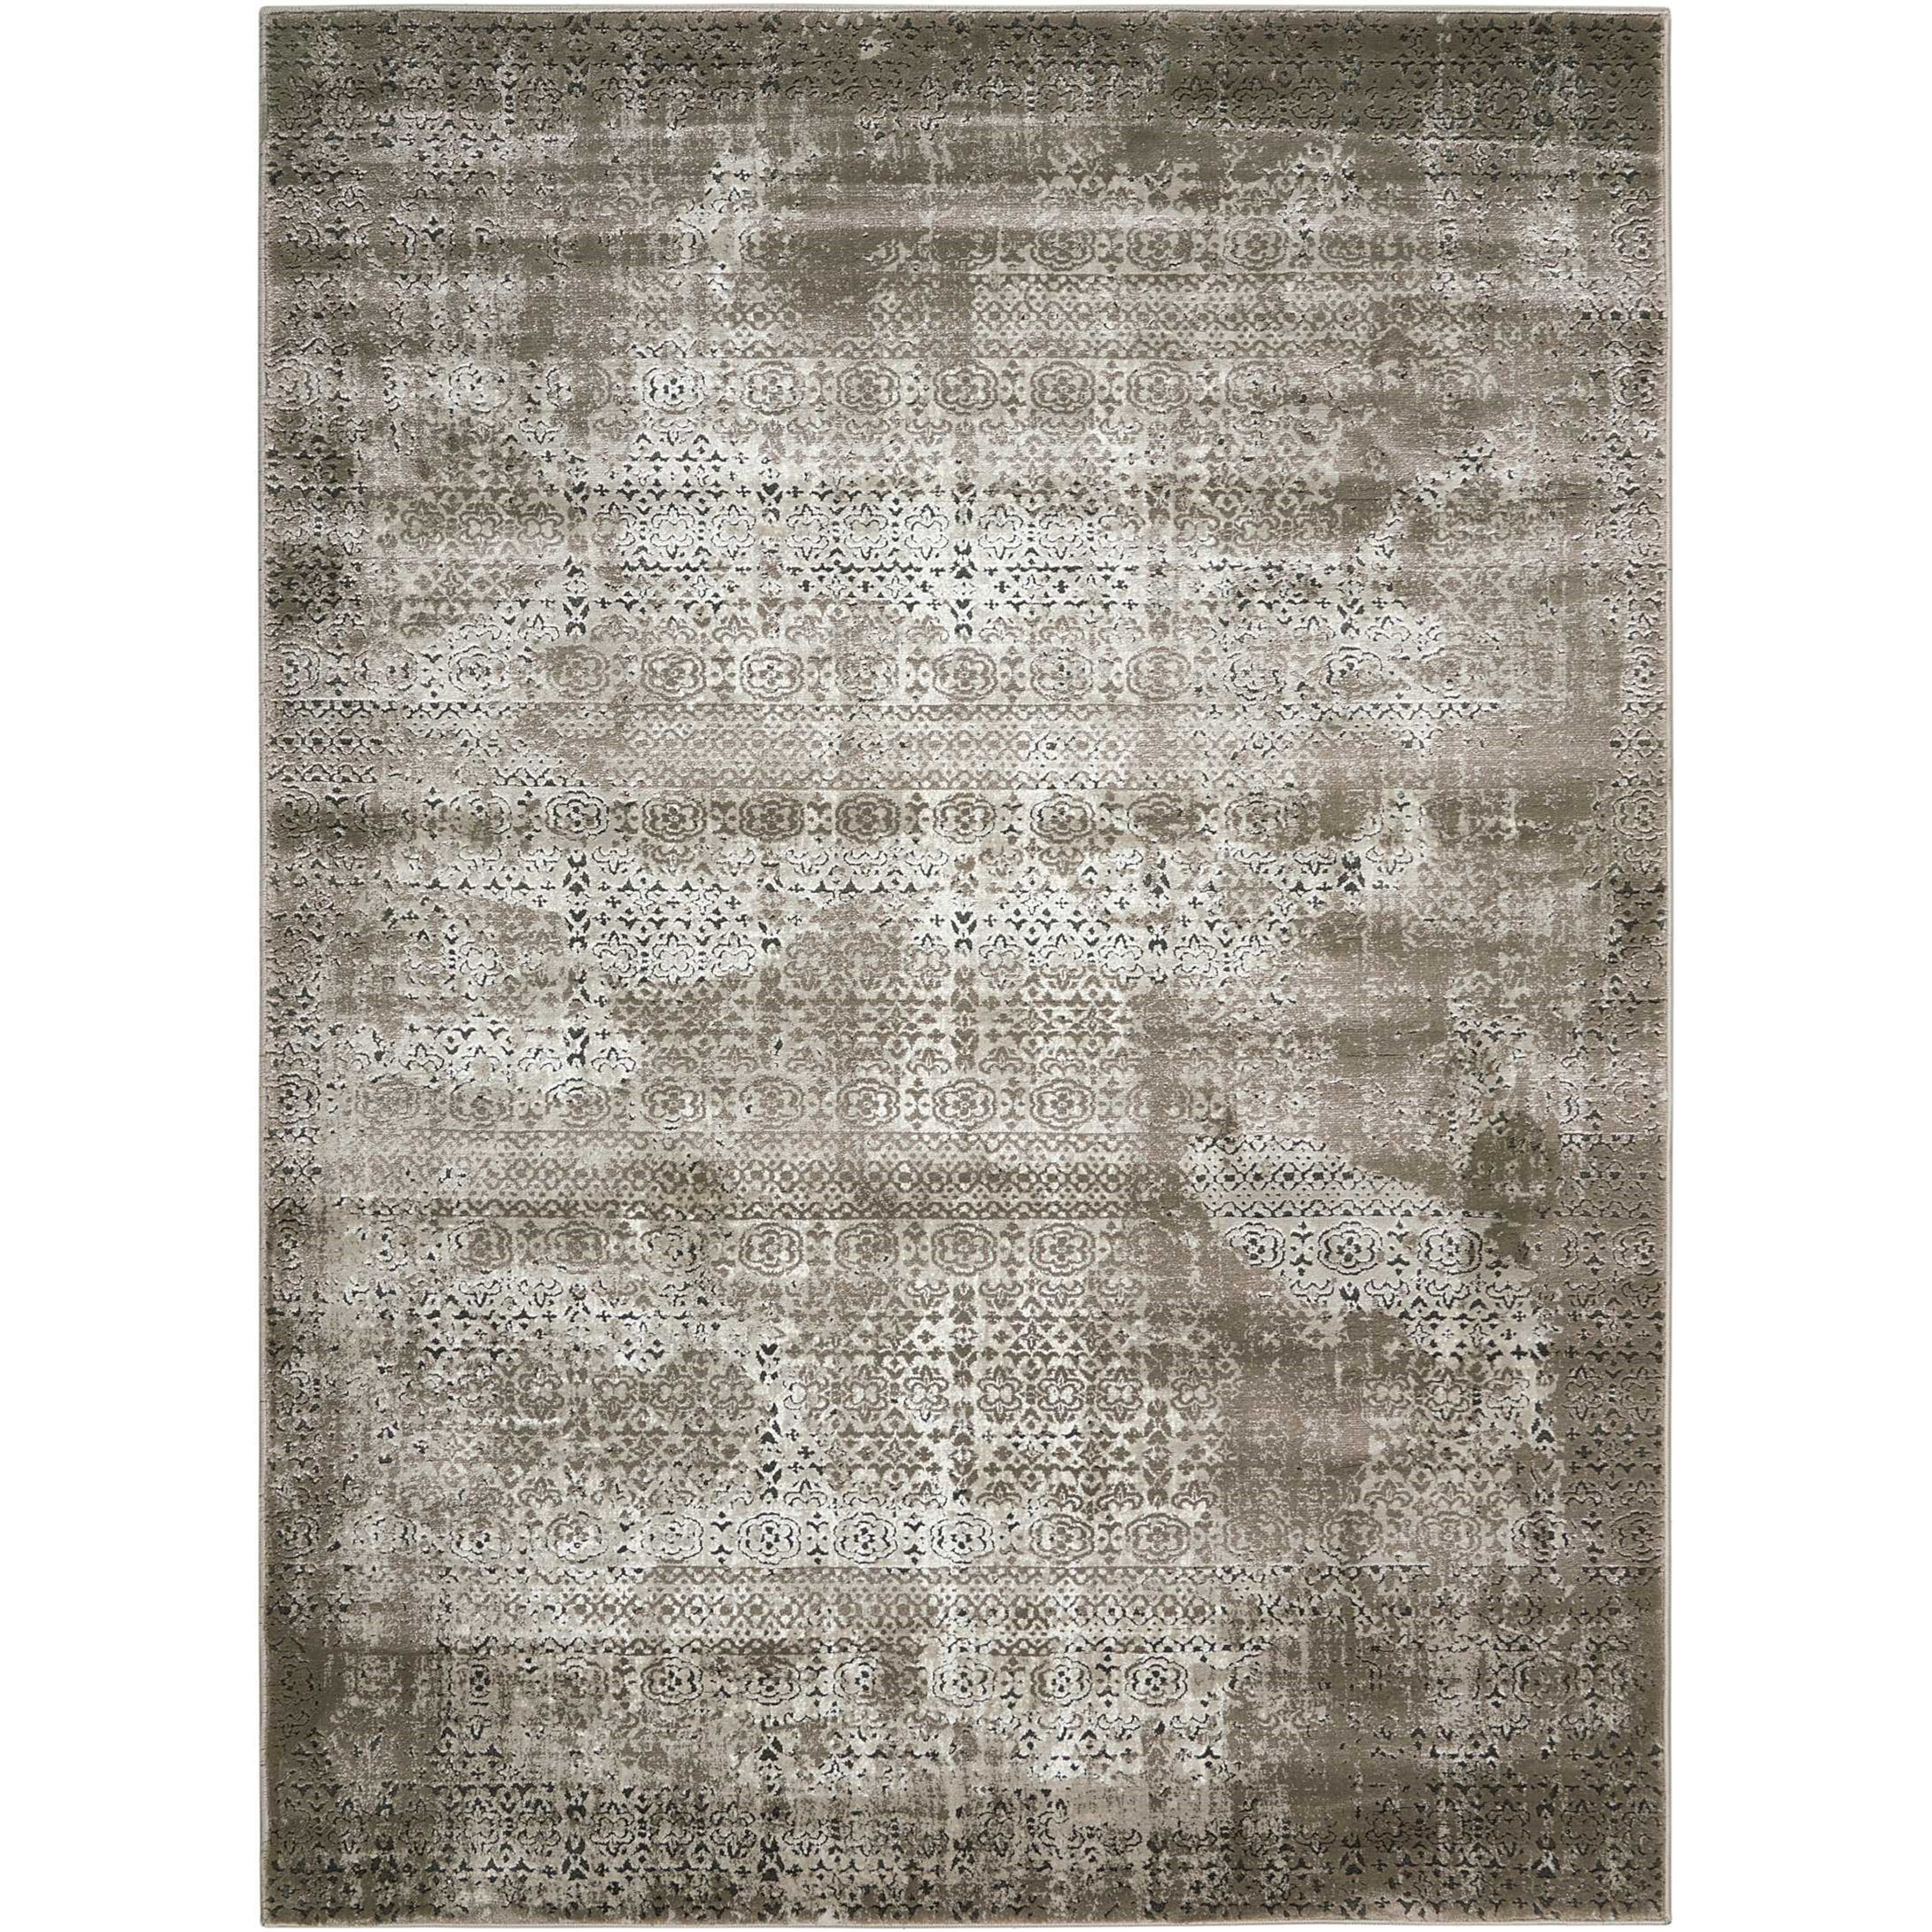 "Karma 5'3"" X 7'4"" Ash Rug by Nourison at Sprintz Furniture"